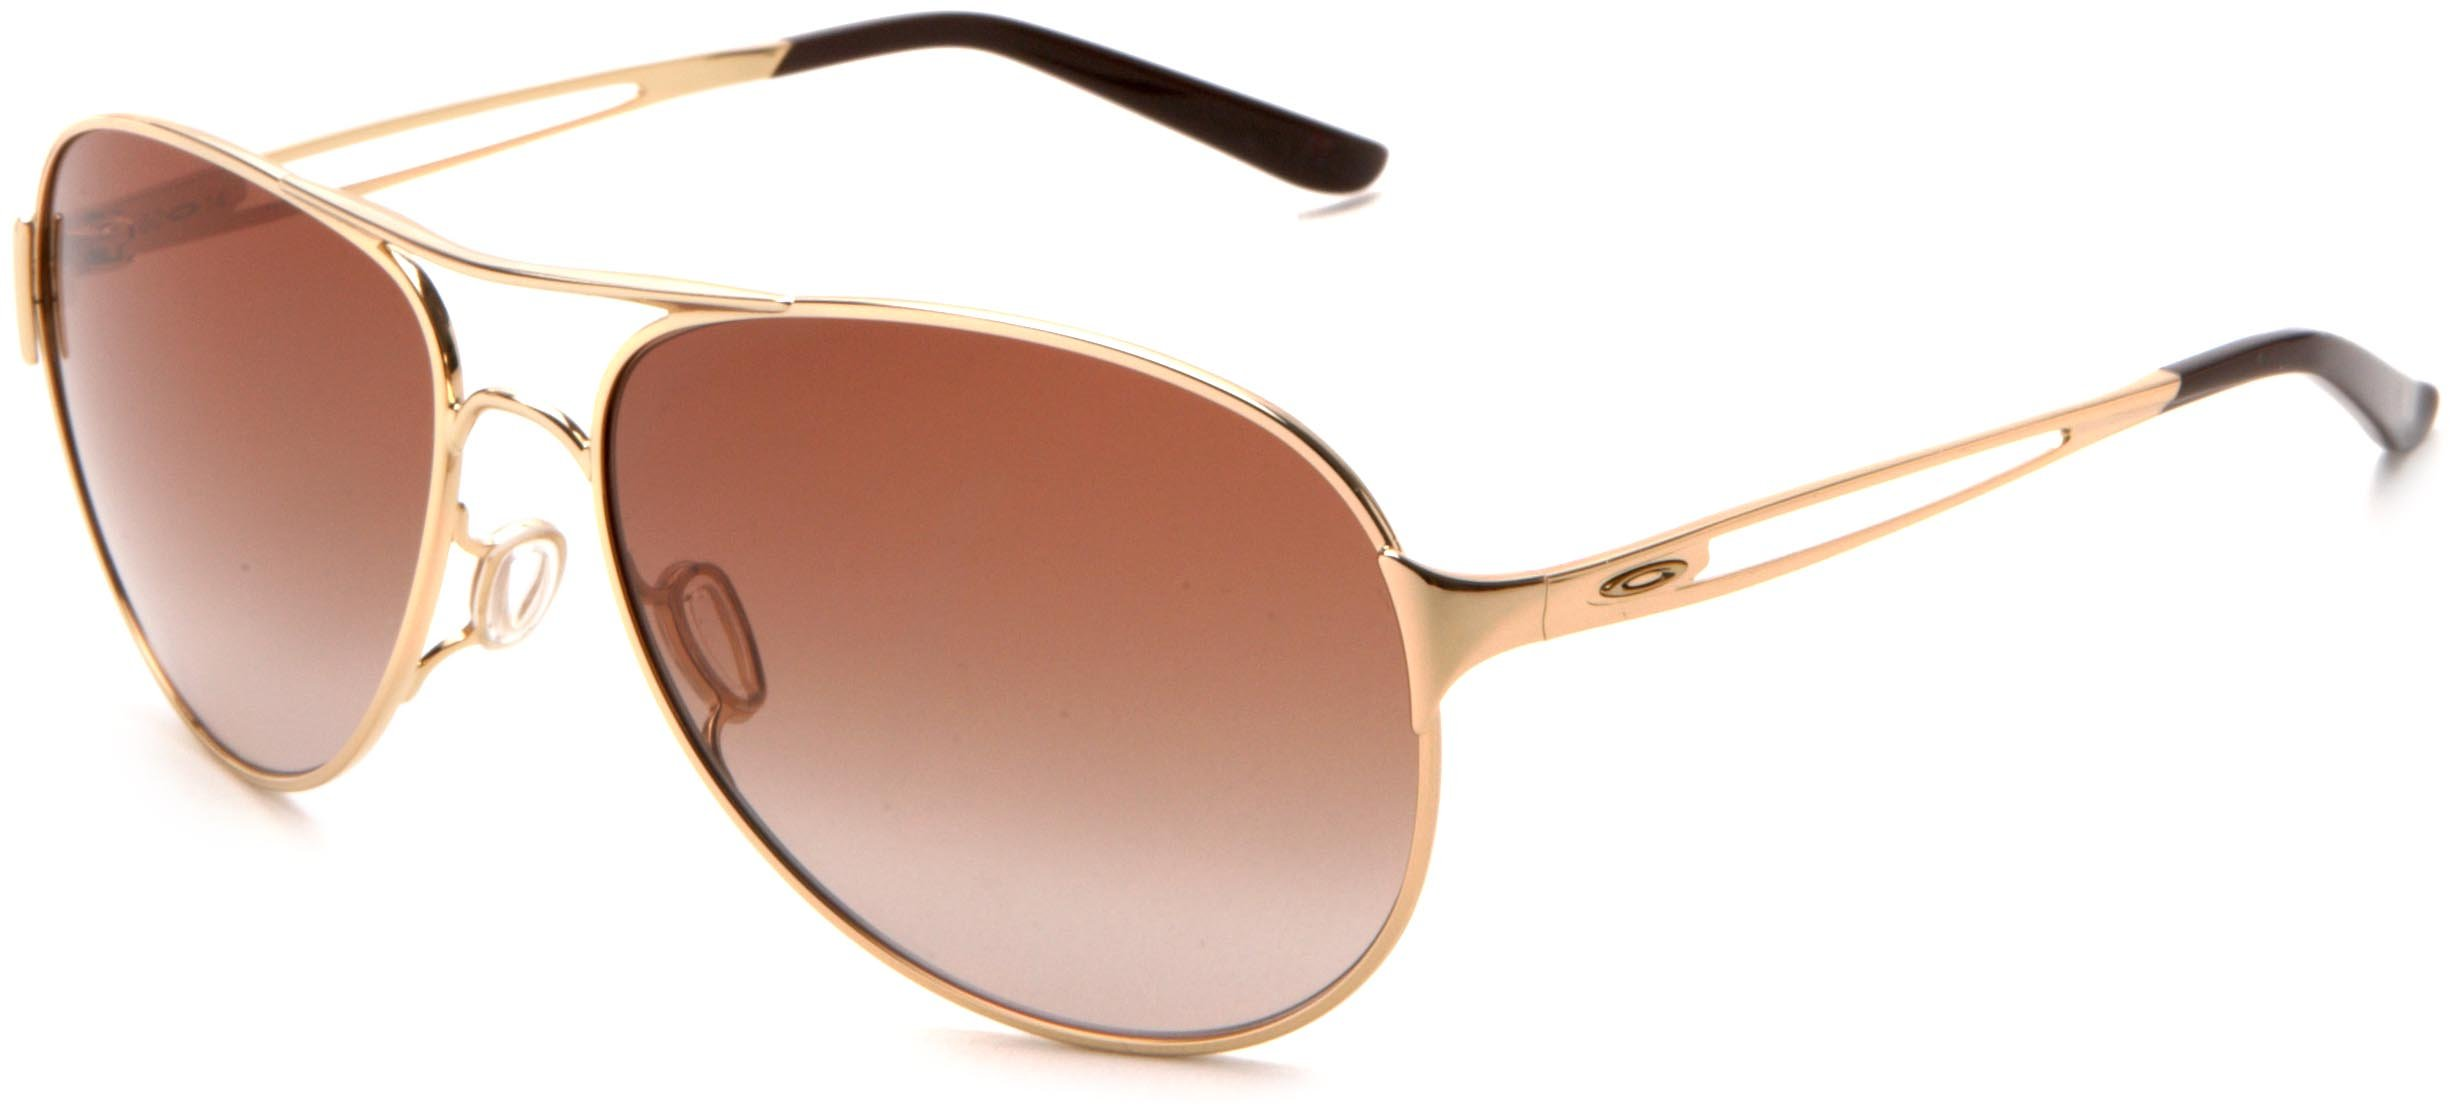 Oakley Women's Caveat Aviator Sunglasses,Polished Gold Frame/Dark Brown Gradient Lens,One Size